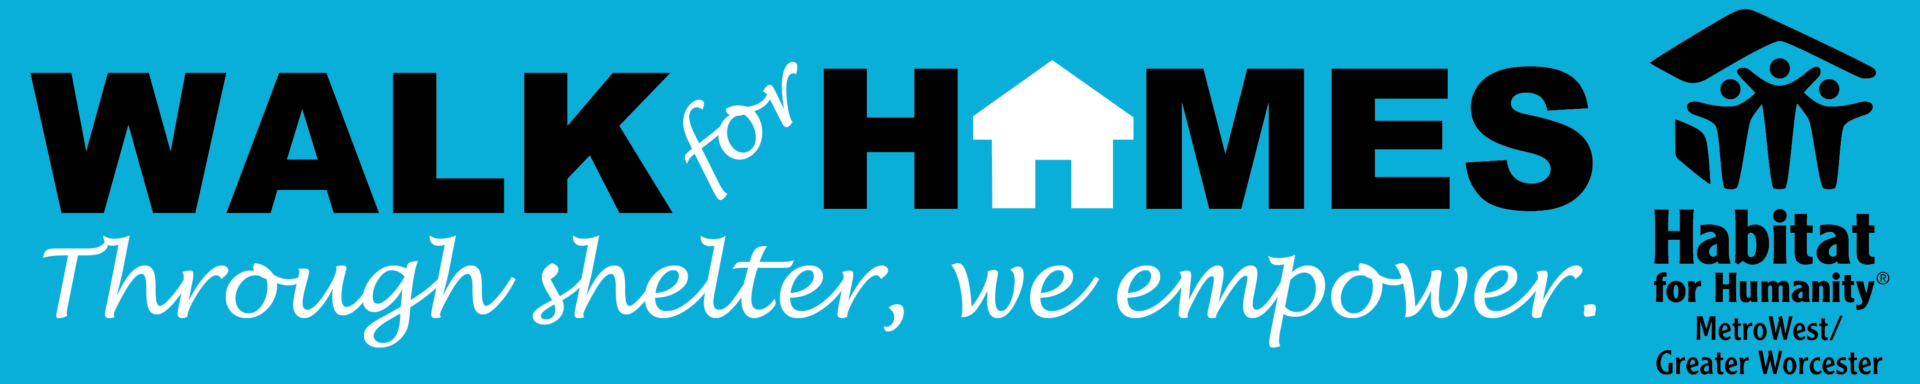 Walk for Homes logo